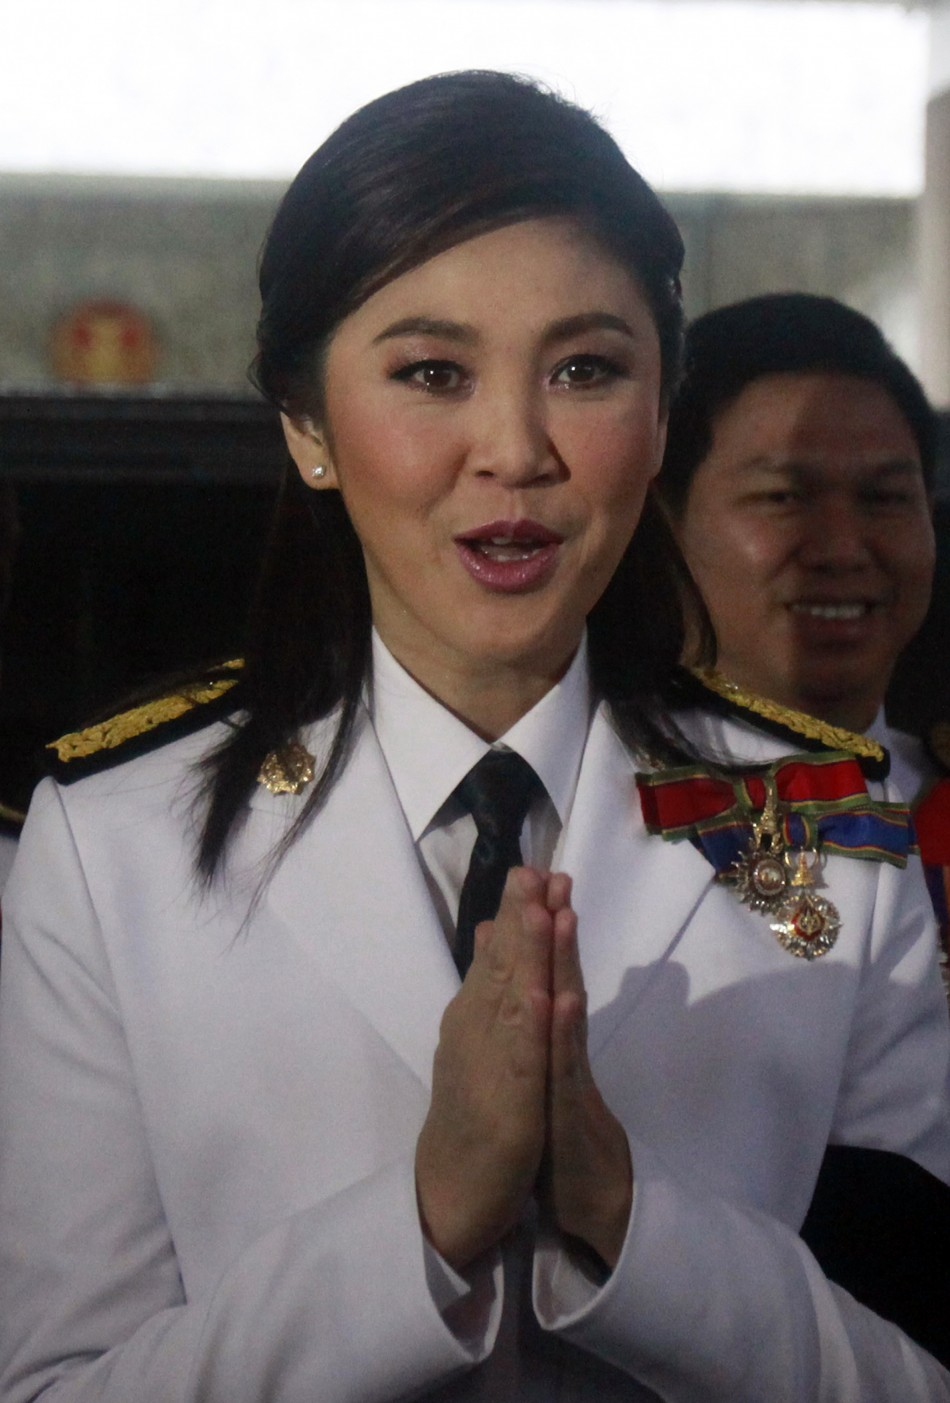 Prime Minister elect Yingluck Shinawatra of the Puea Thai Party gestures to media as she arrives at the parliament before the inauguration ceremony of the National Legislative Assembly in Bangkok